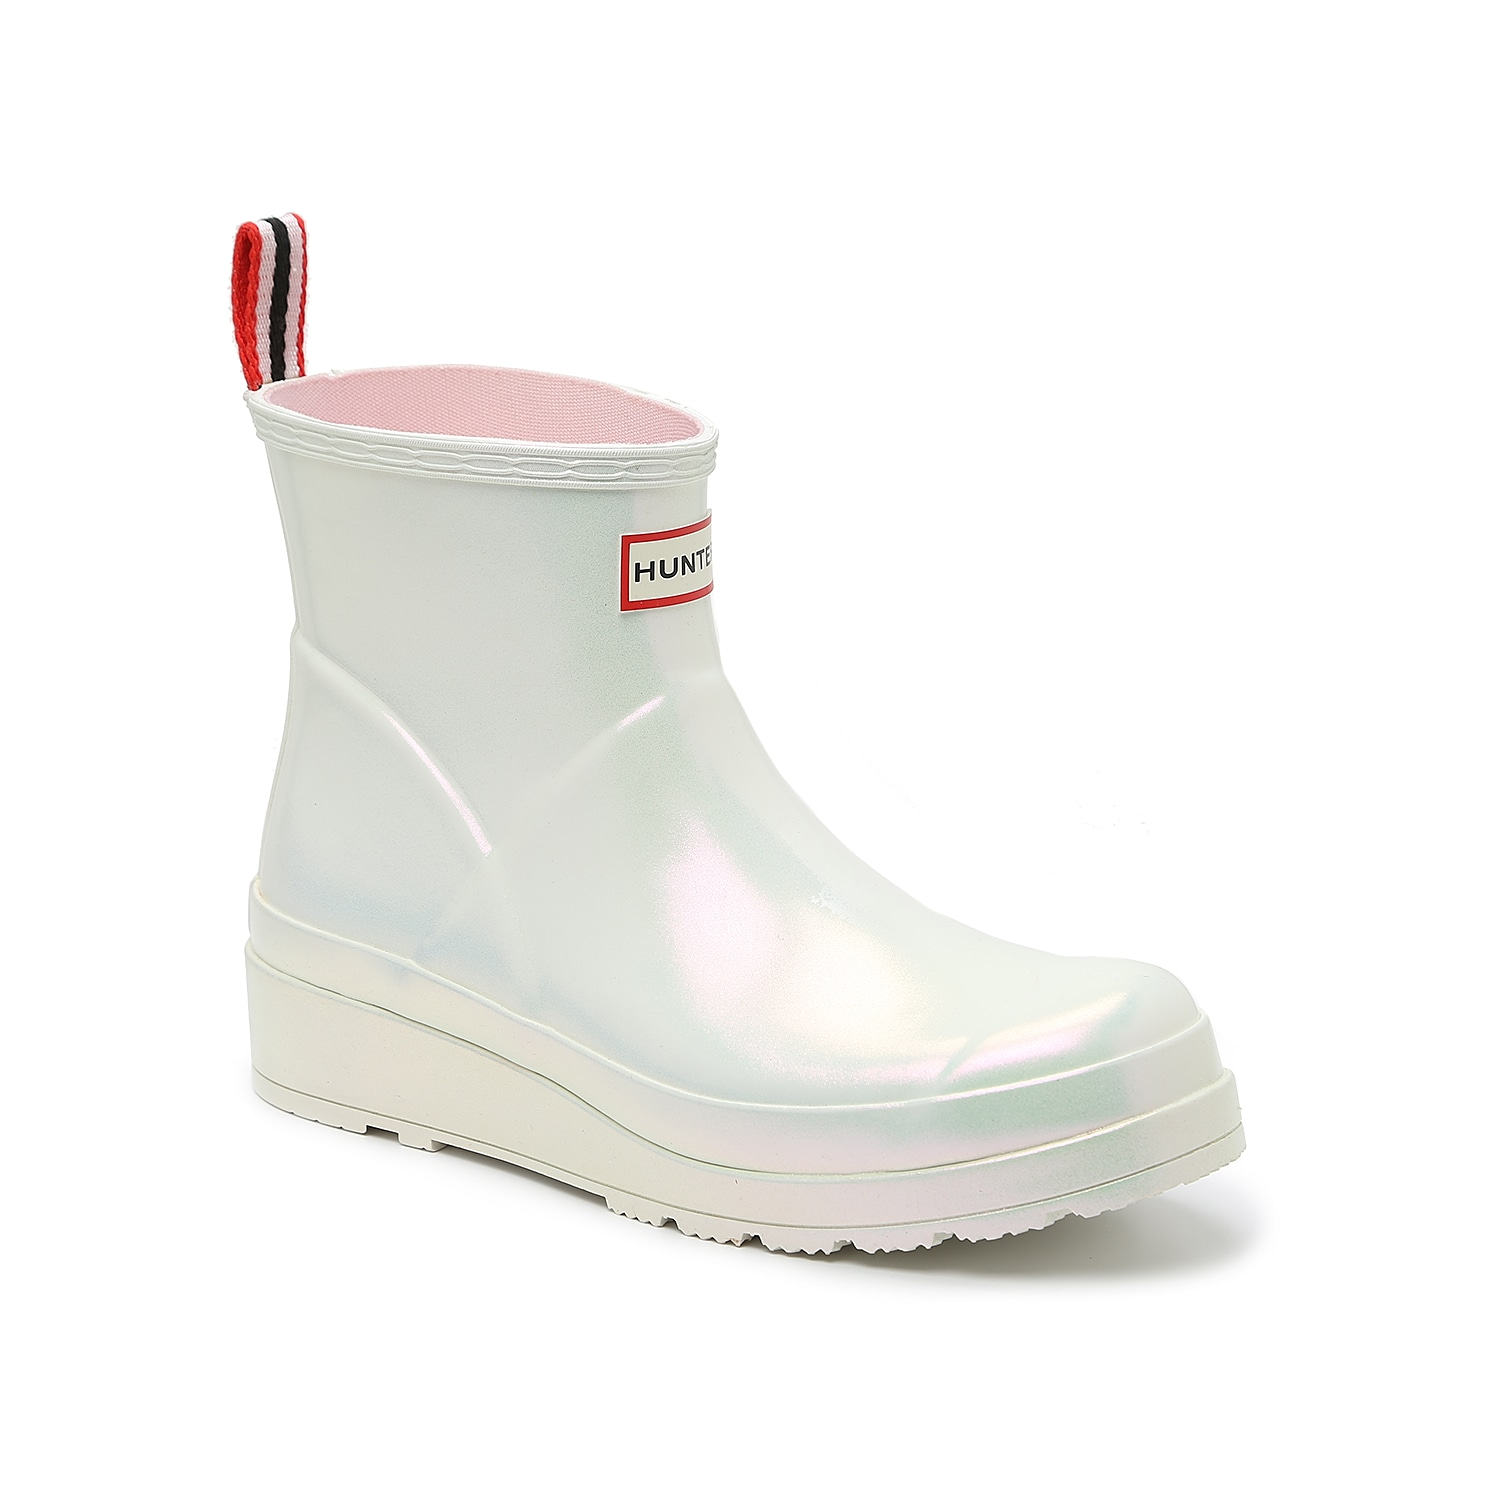 The Nebula Play Short rain boot hits at the top of the ankle for stylish height that complements street fashion. A slight wedge boosts the silhouette, while a playful pearlescent finish gives these boots a bit of shine. Traditional striping completes the heel pull and matching logo.Click here for Boot Measuring Guide.